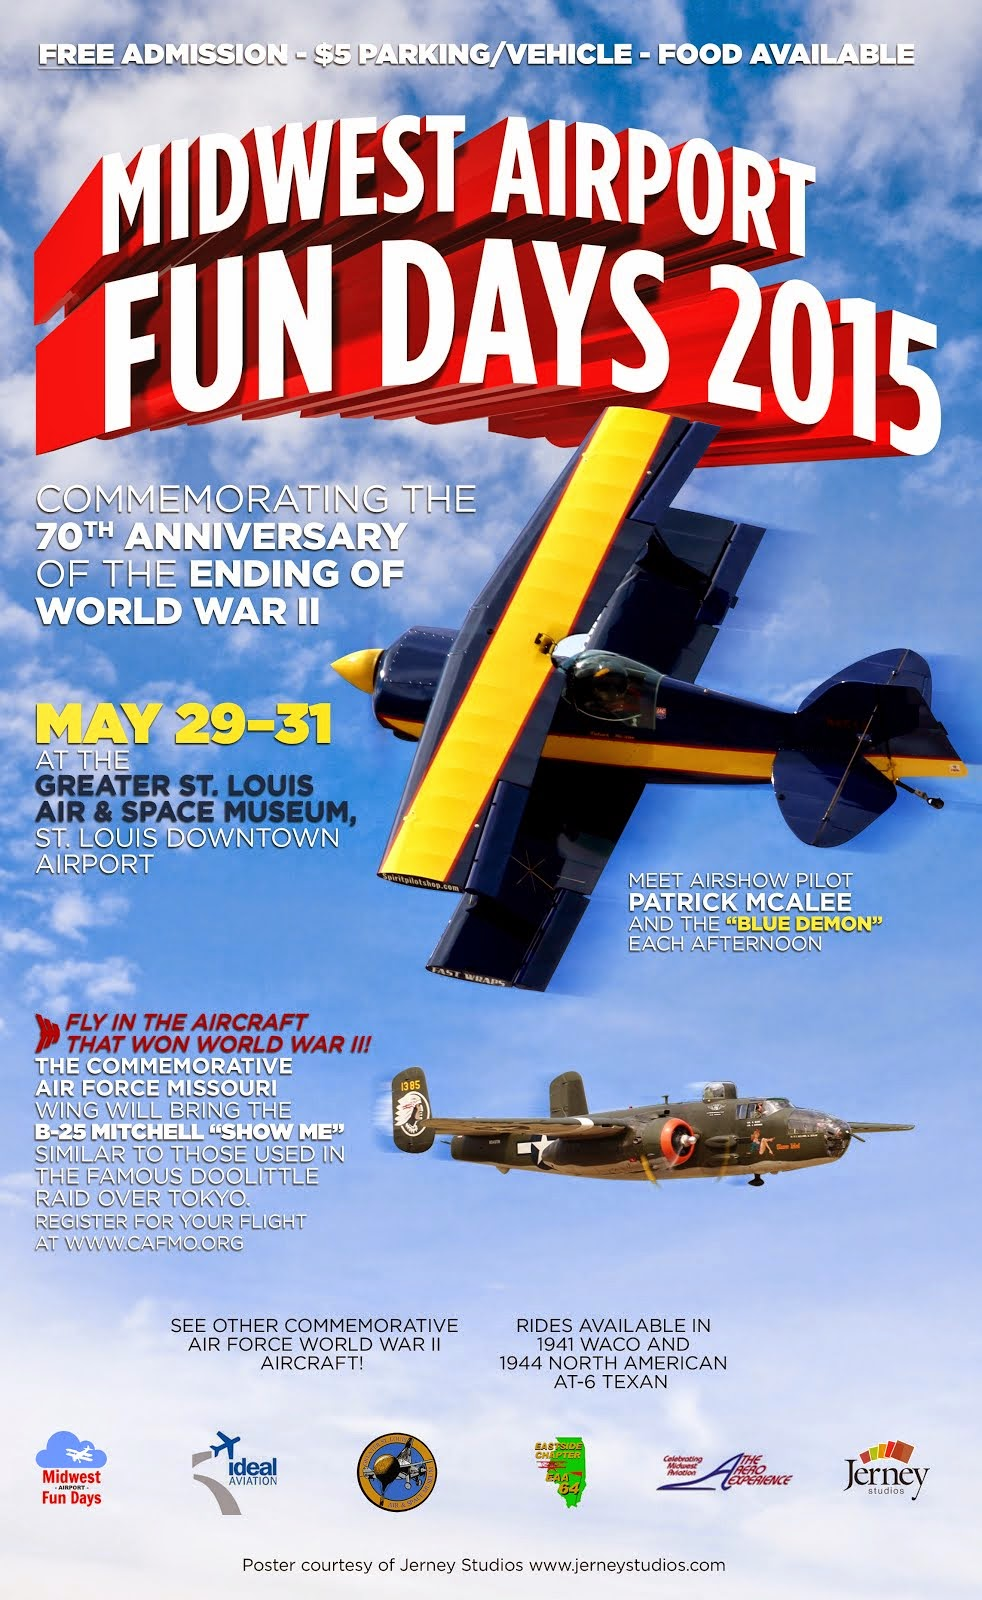 Midwest Airport Fun Days 2015